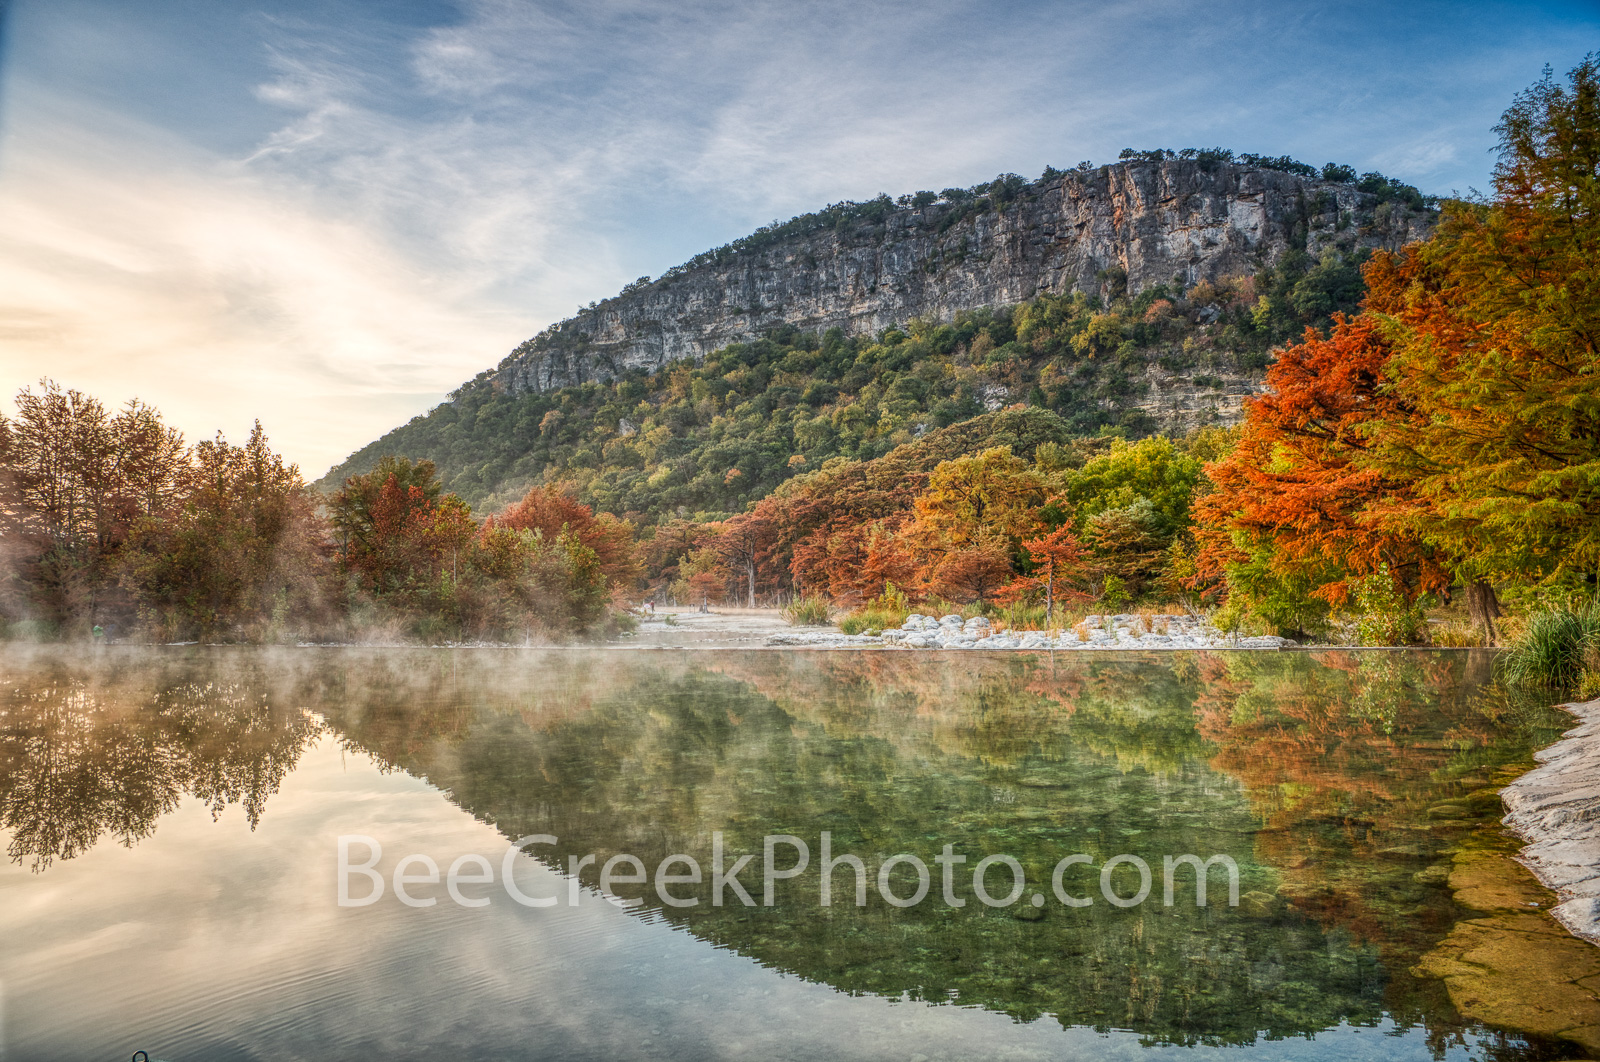 old baldy, mist, steam, frio river, river, bald cypress, orange, sycamore trees, garner, garner state park, texas hill country, hill country, emerald water, water, texas, , photo